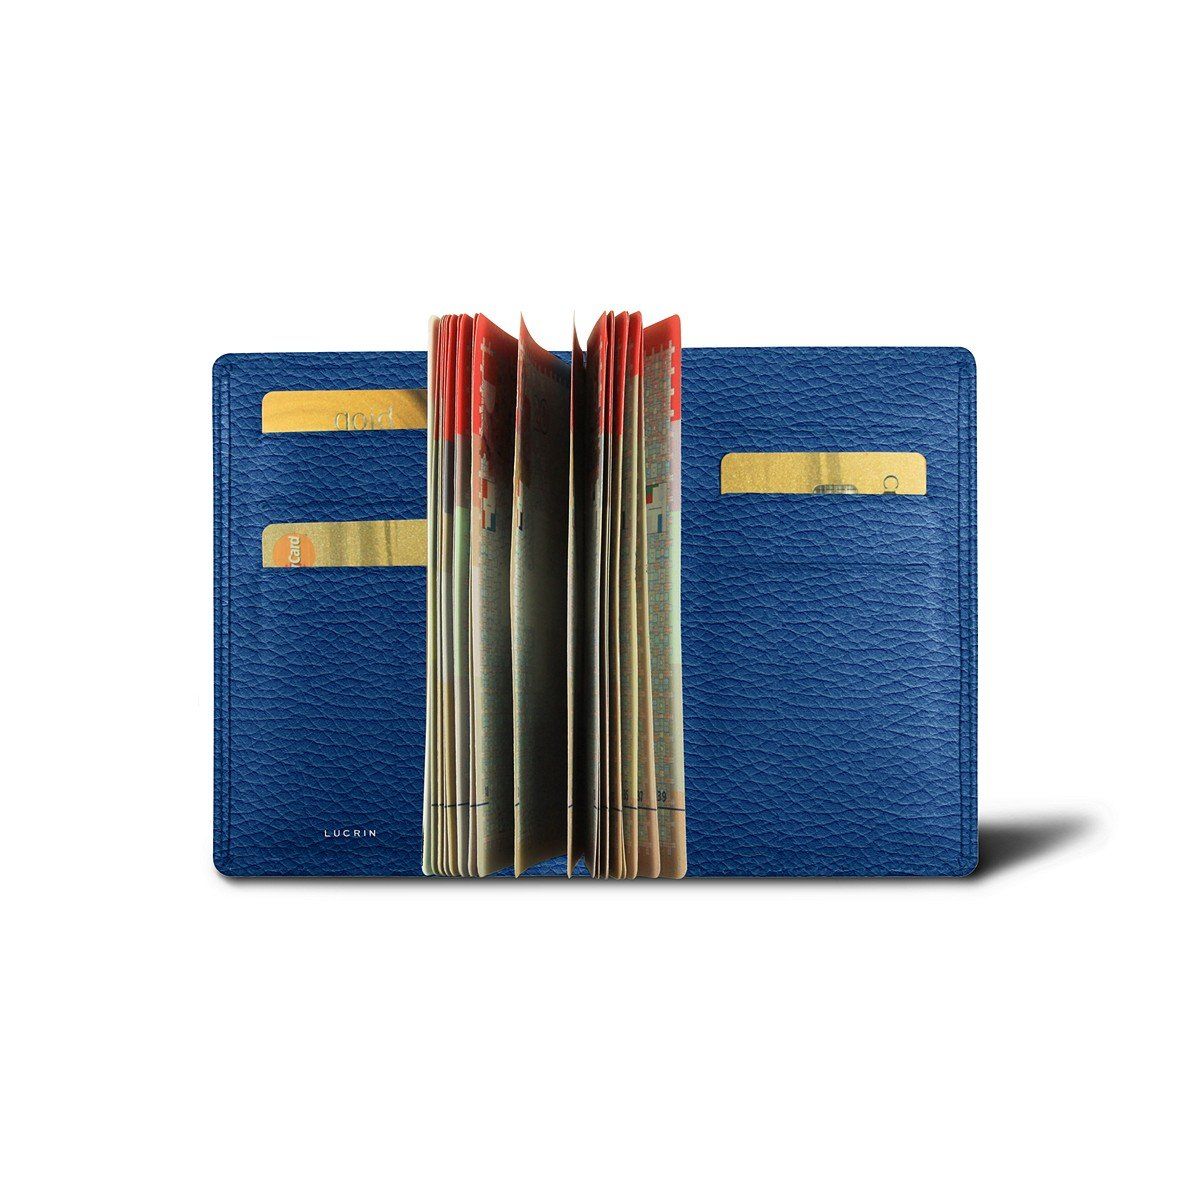 Lucrin - Luxury Passport Holder - Royal Blue - Granulated Leather